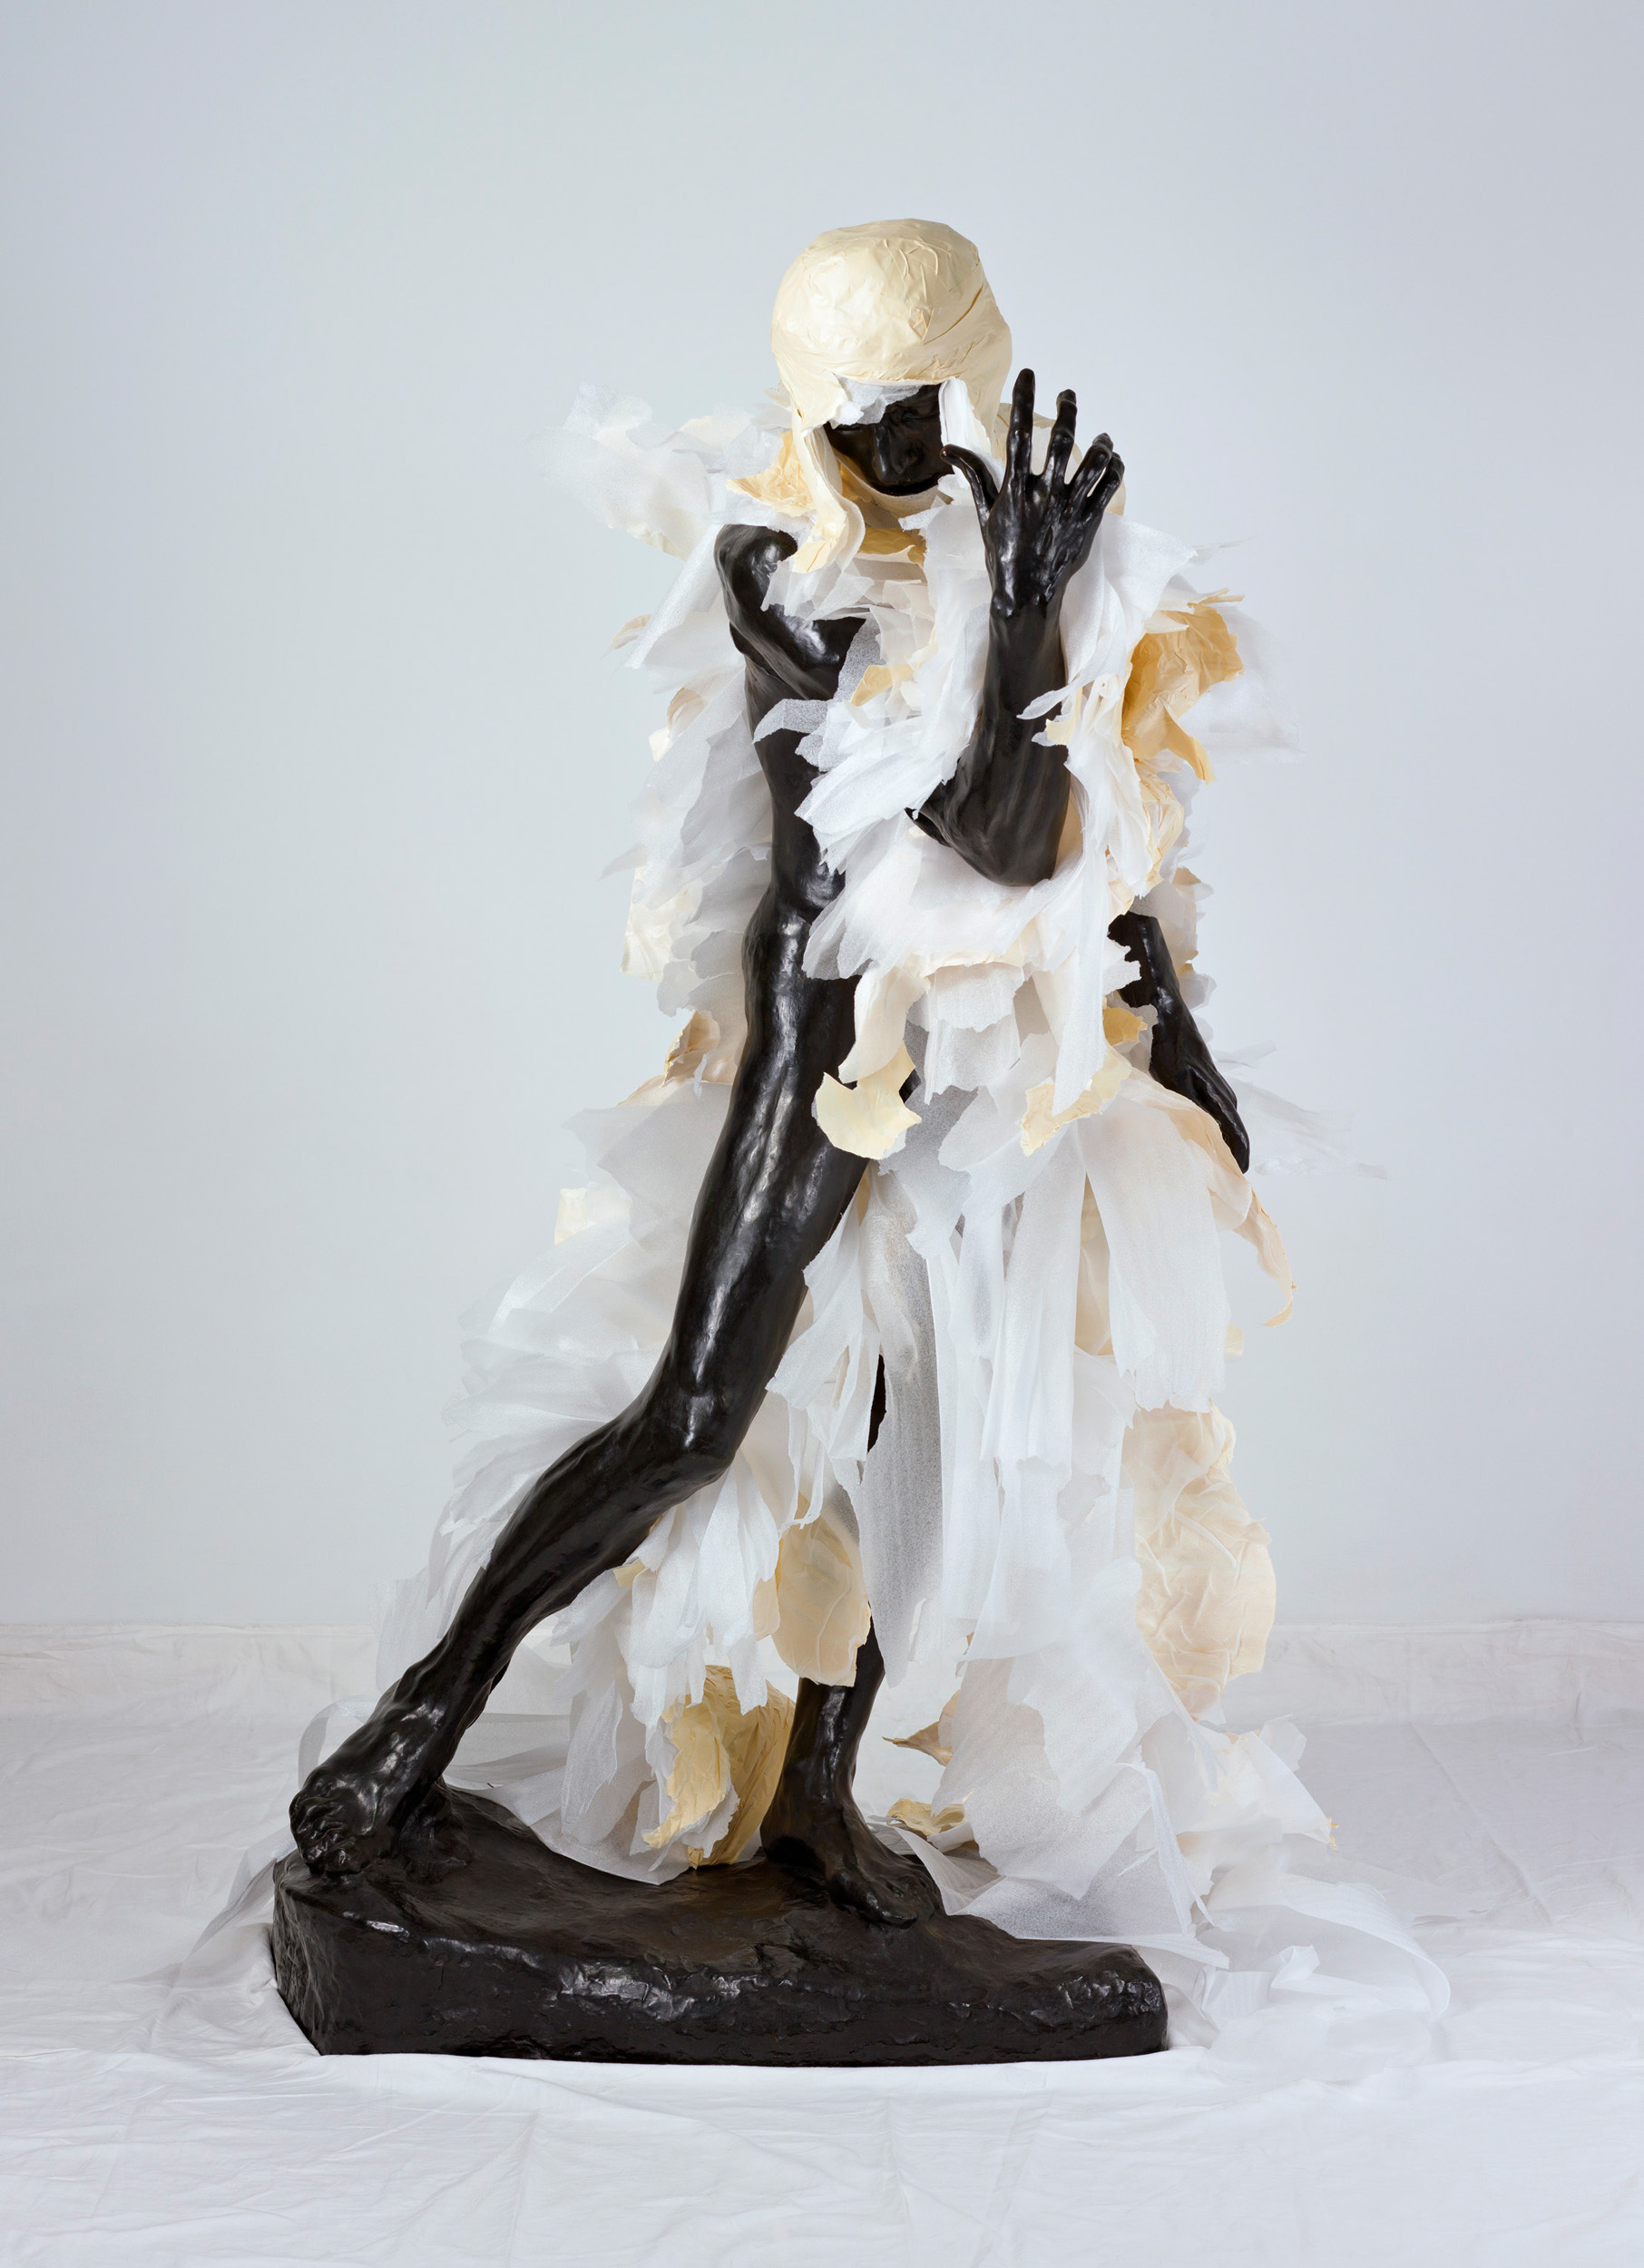 Unwrapping Rodin (White) 6   2010, colour photograph 175 x 127 cm / 69 x 50 in. Edition of 2